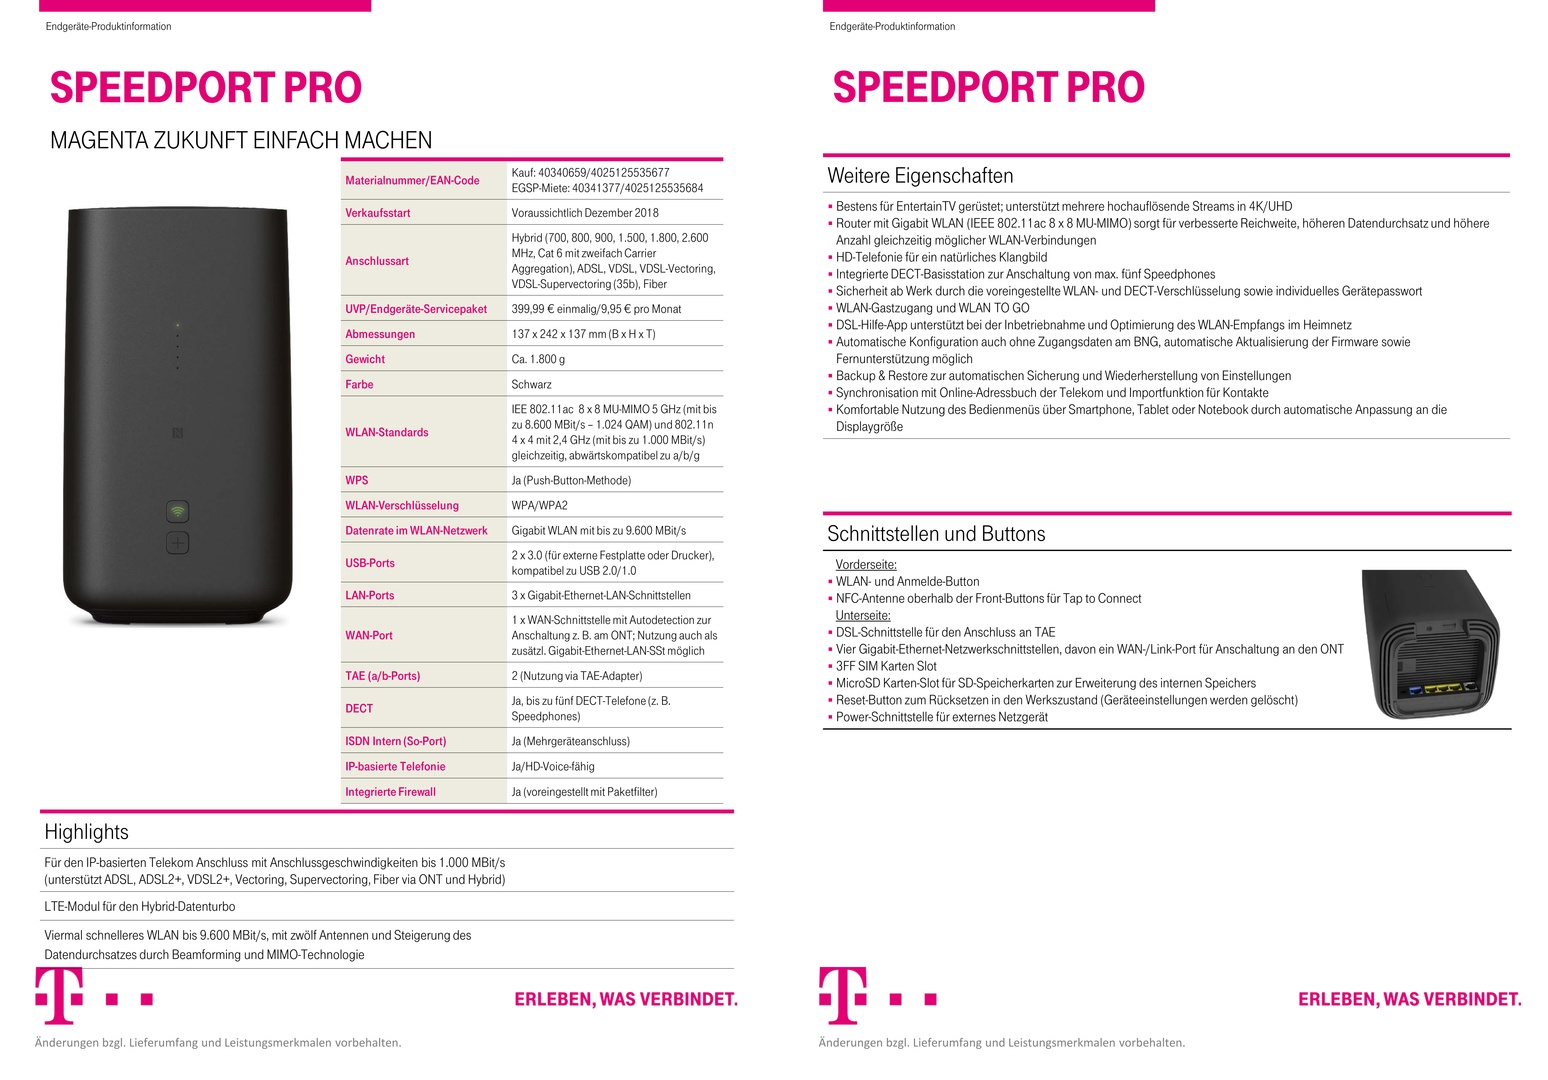 Datenblatt des Speedport Pro (1/2)